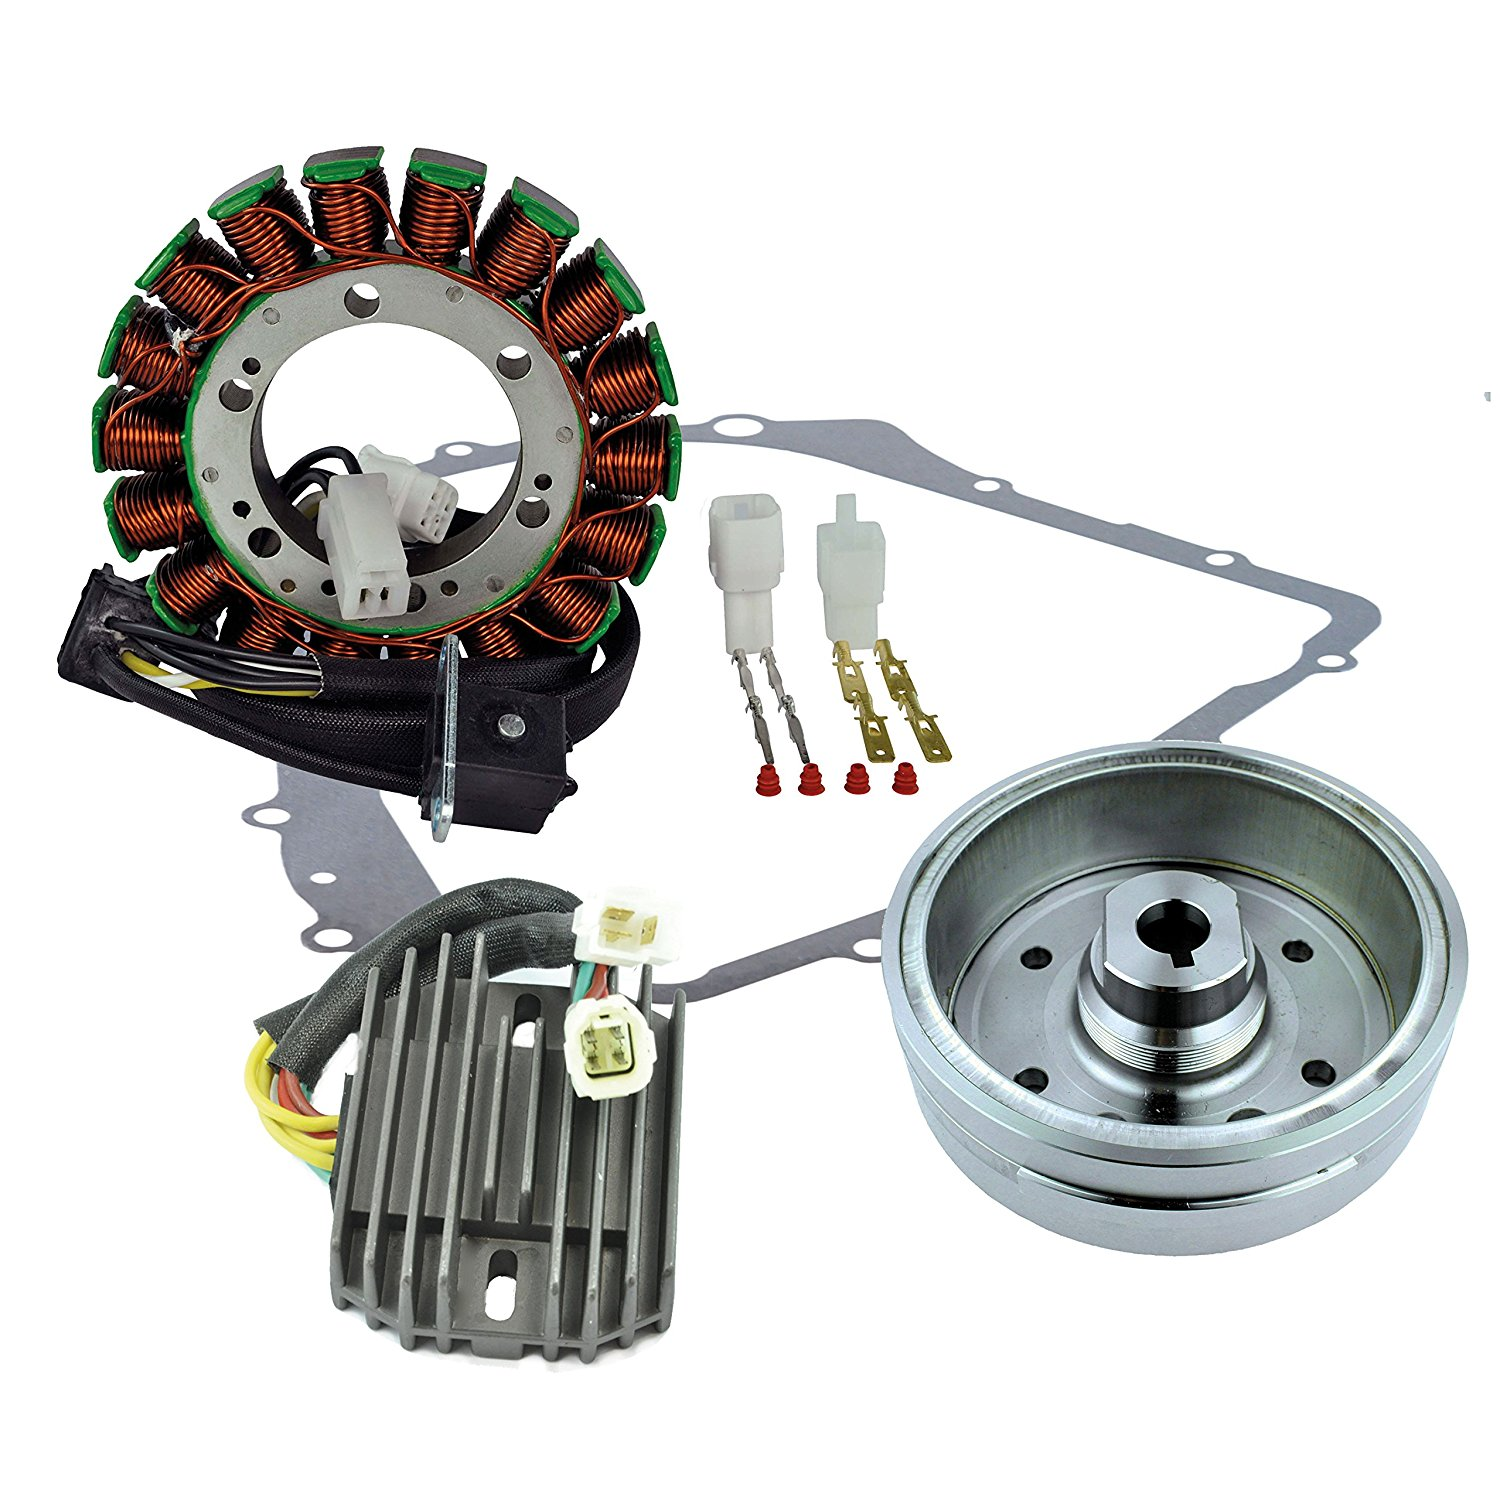 Kit Improved Flywheel + Stator + Crankcase Cover Gasket + Voltage Regulator Rectifier For Arctic Cat 400 Auto 2003-2008 OEM Repl.# 3430-054 3430-071 0802-037 3430-053 3402-590 3402-682 3530-028